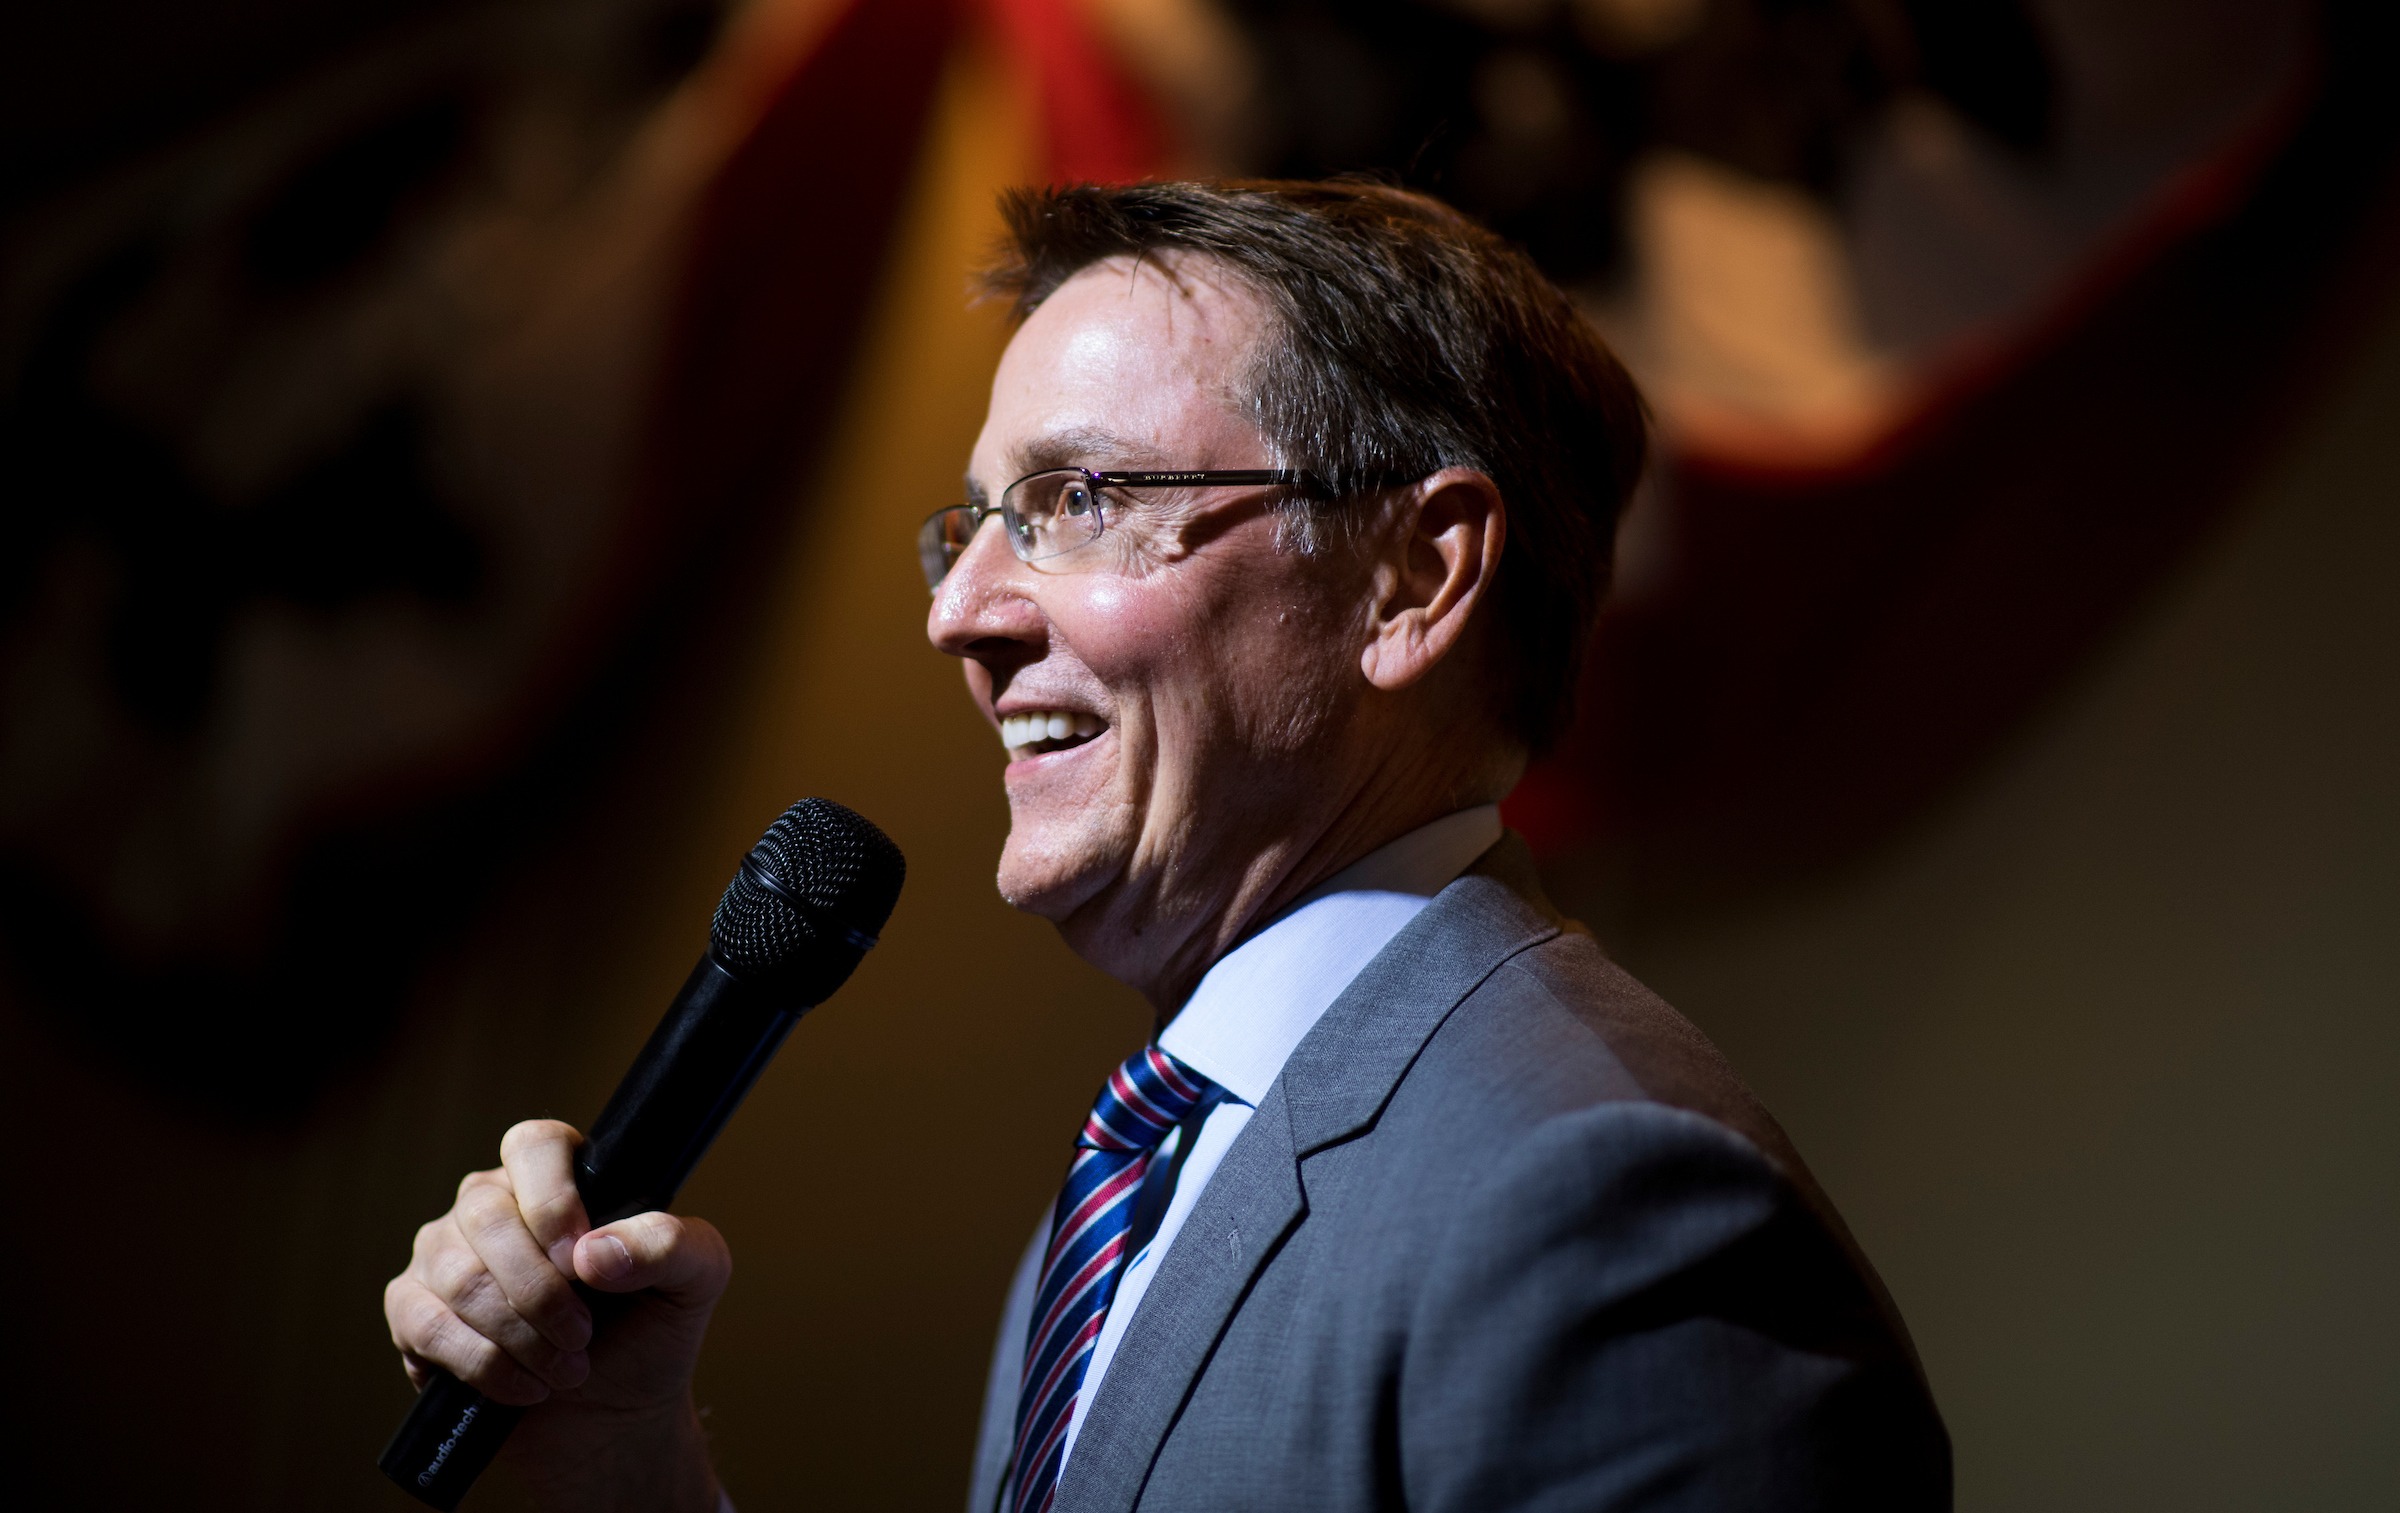 Lexington Mayor Jim Gray, seen here campaigning for Senate in 2016, is running for the Democratic nod in the 6th District on Tuesday against retired Marine pilot Amy McGrath. (Bill Clark/CQ Roll Call file photo)